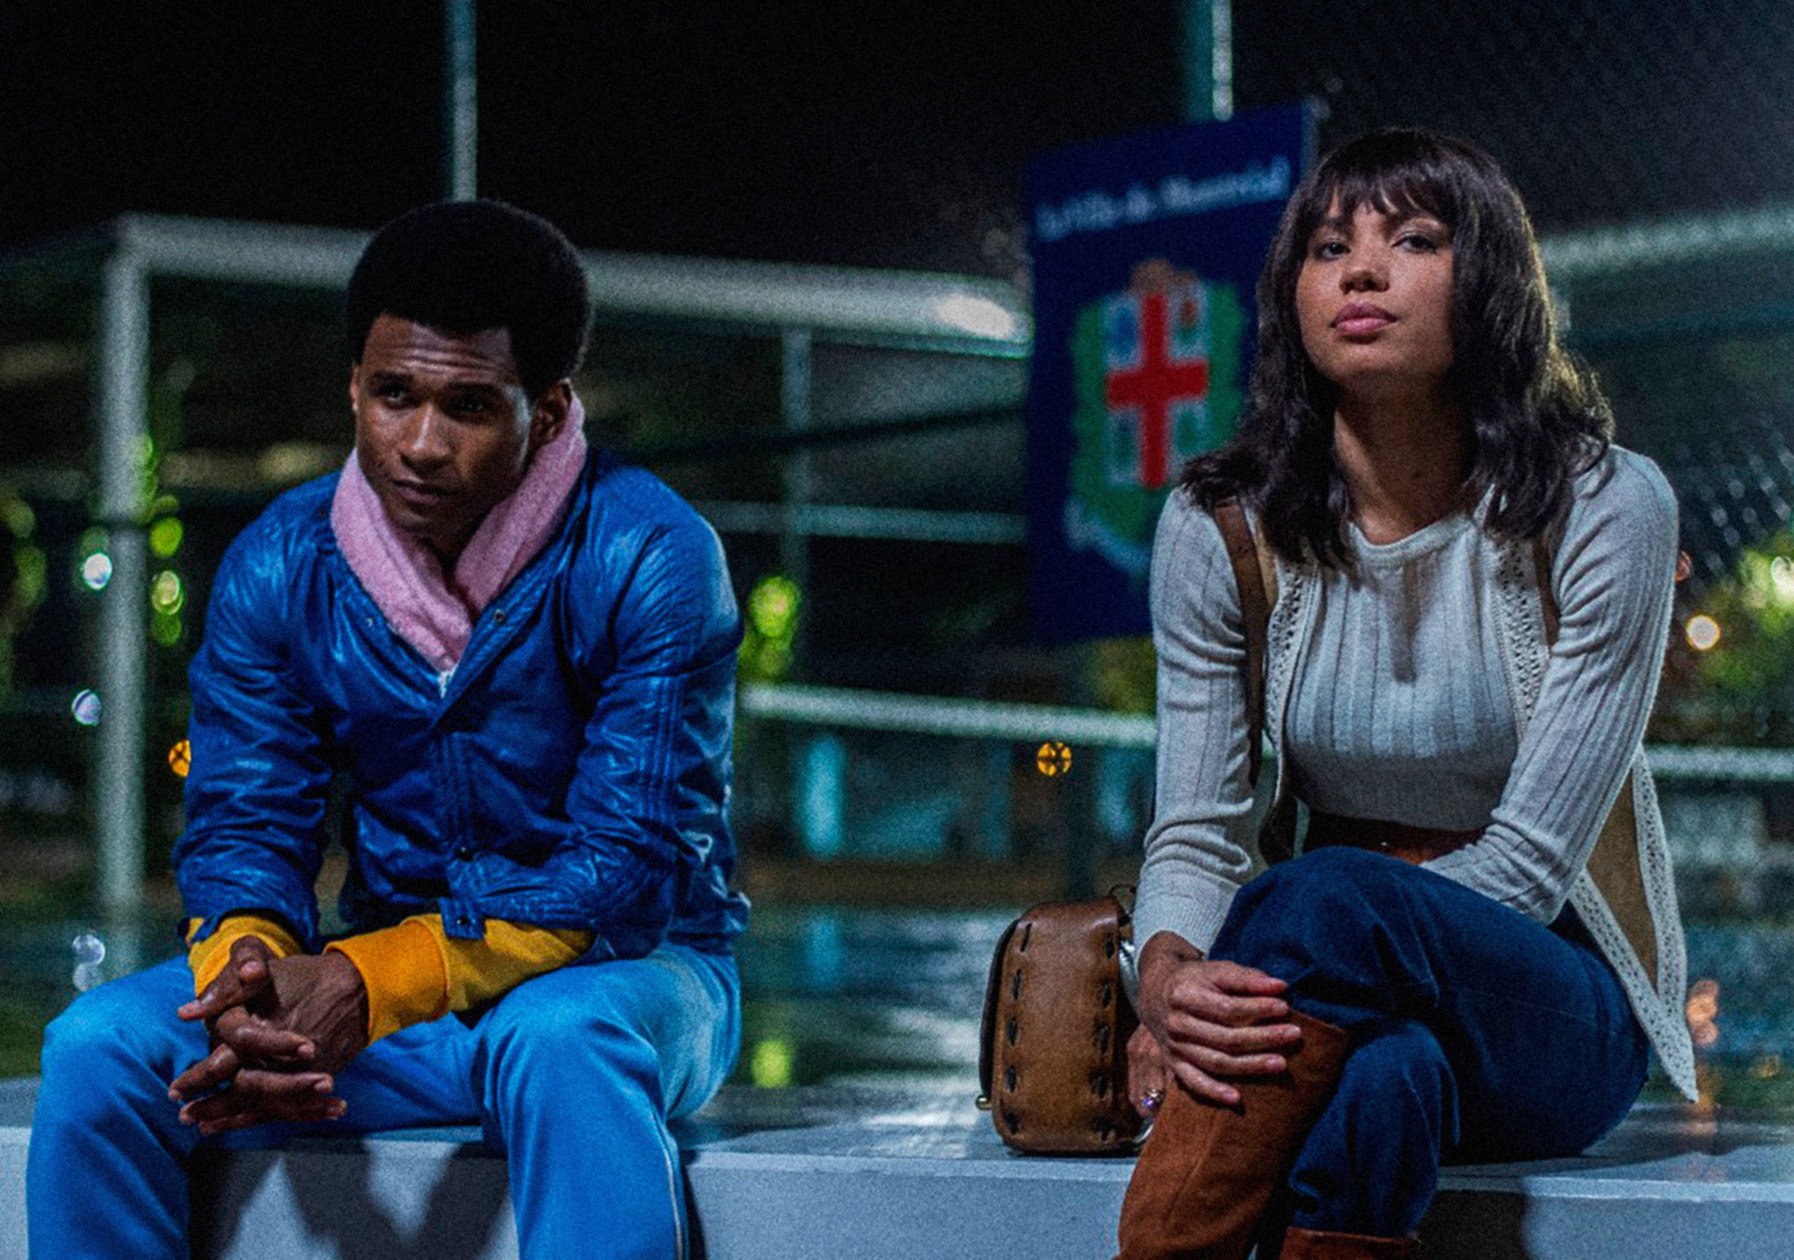 Jurnee and Usher in a scene from Hands of Stone